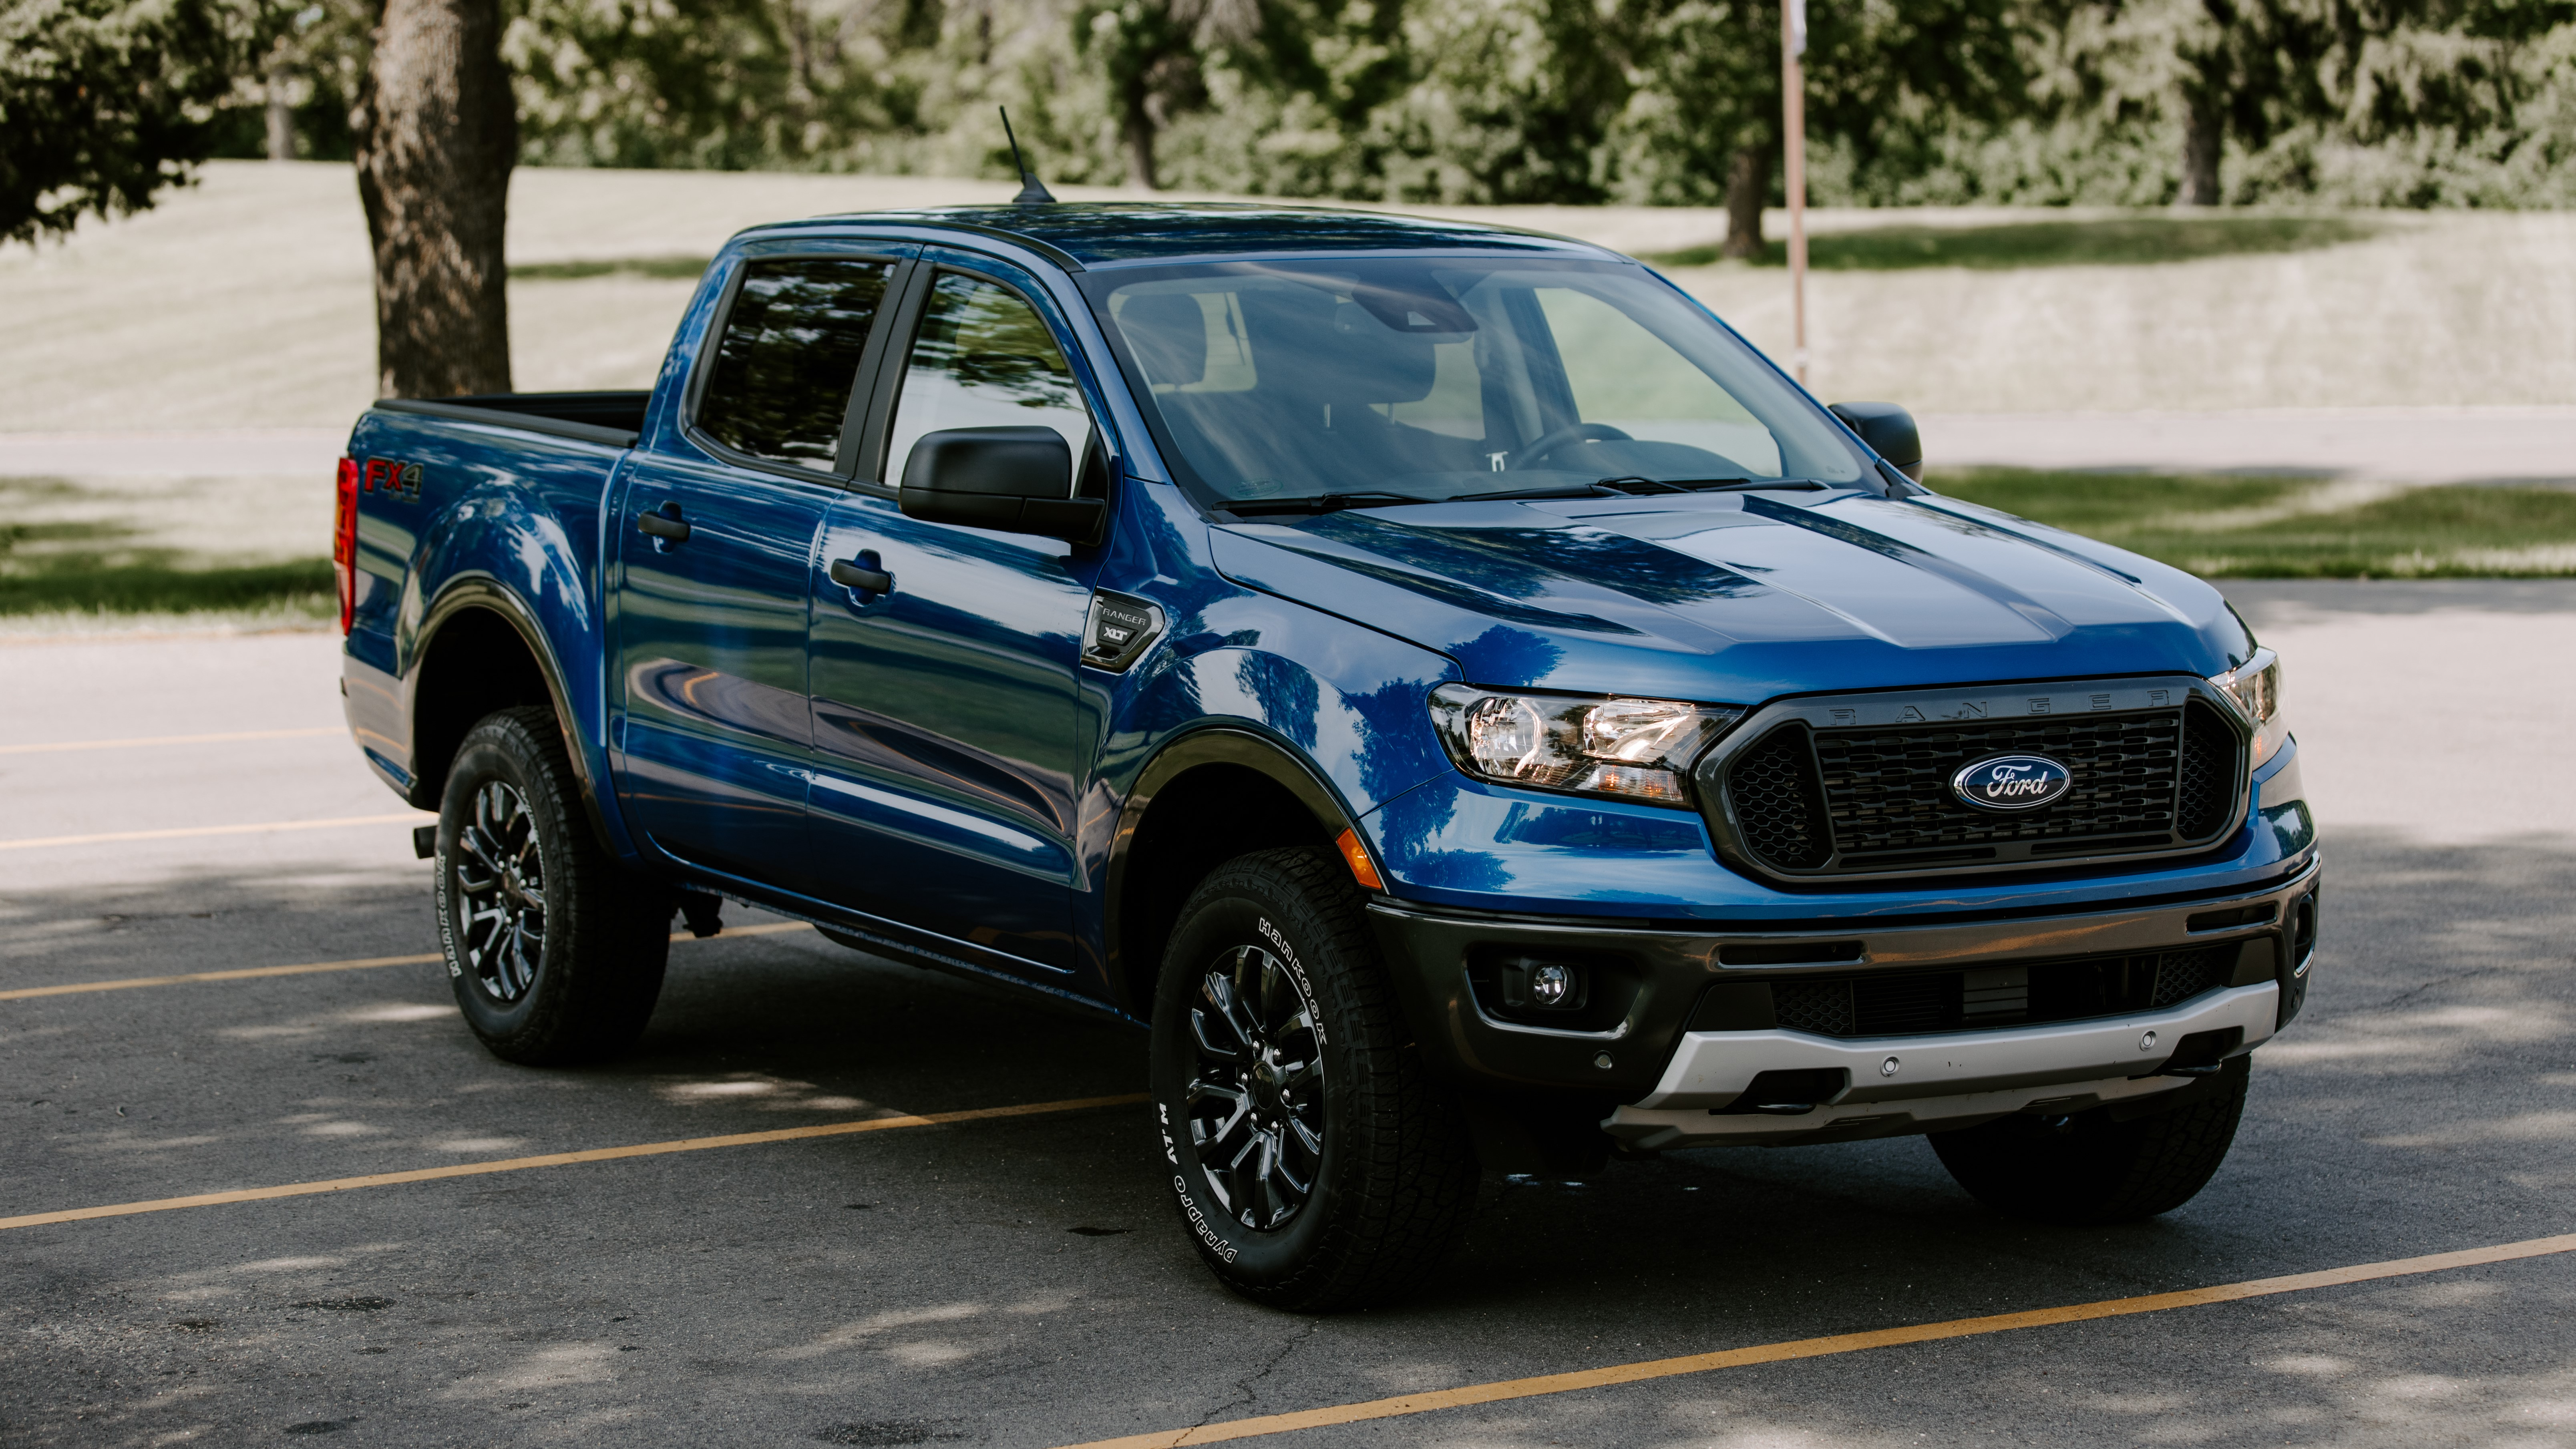 What driving a 2019 Ford Ranger for 600 miles taught me about safety